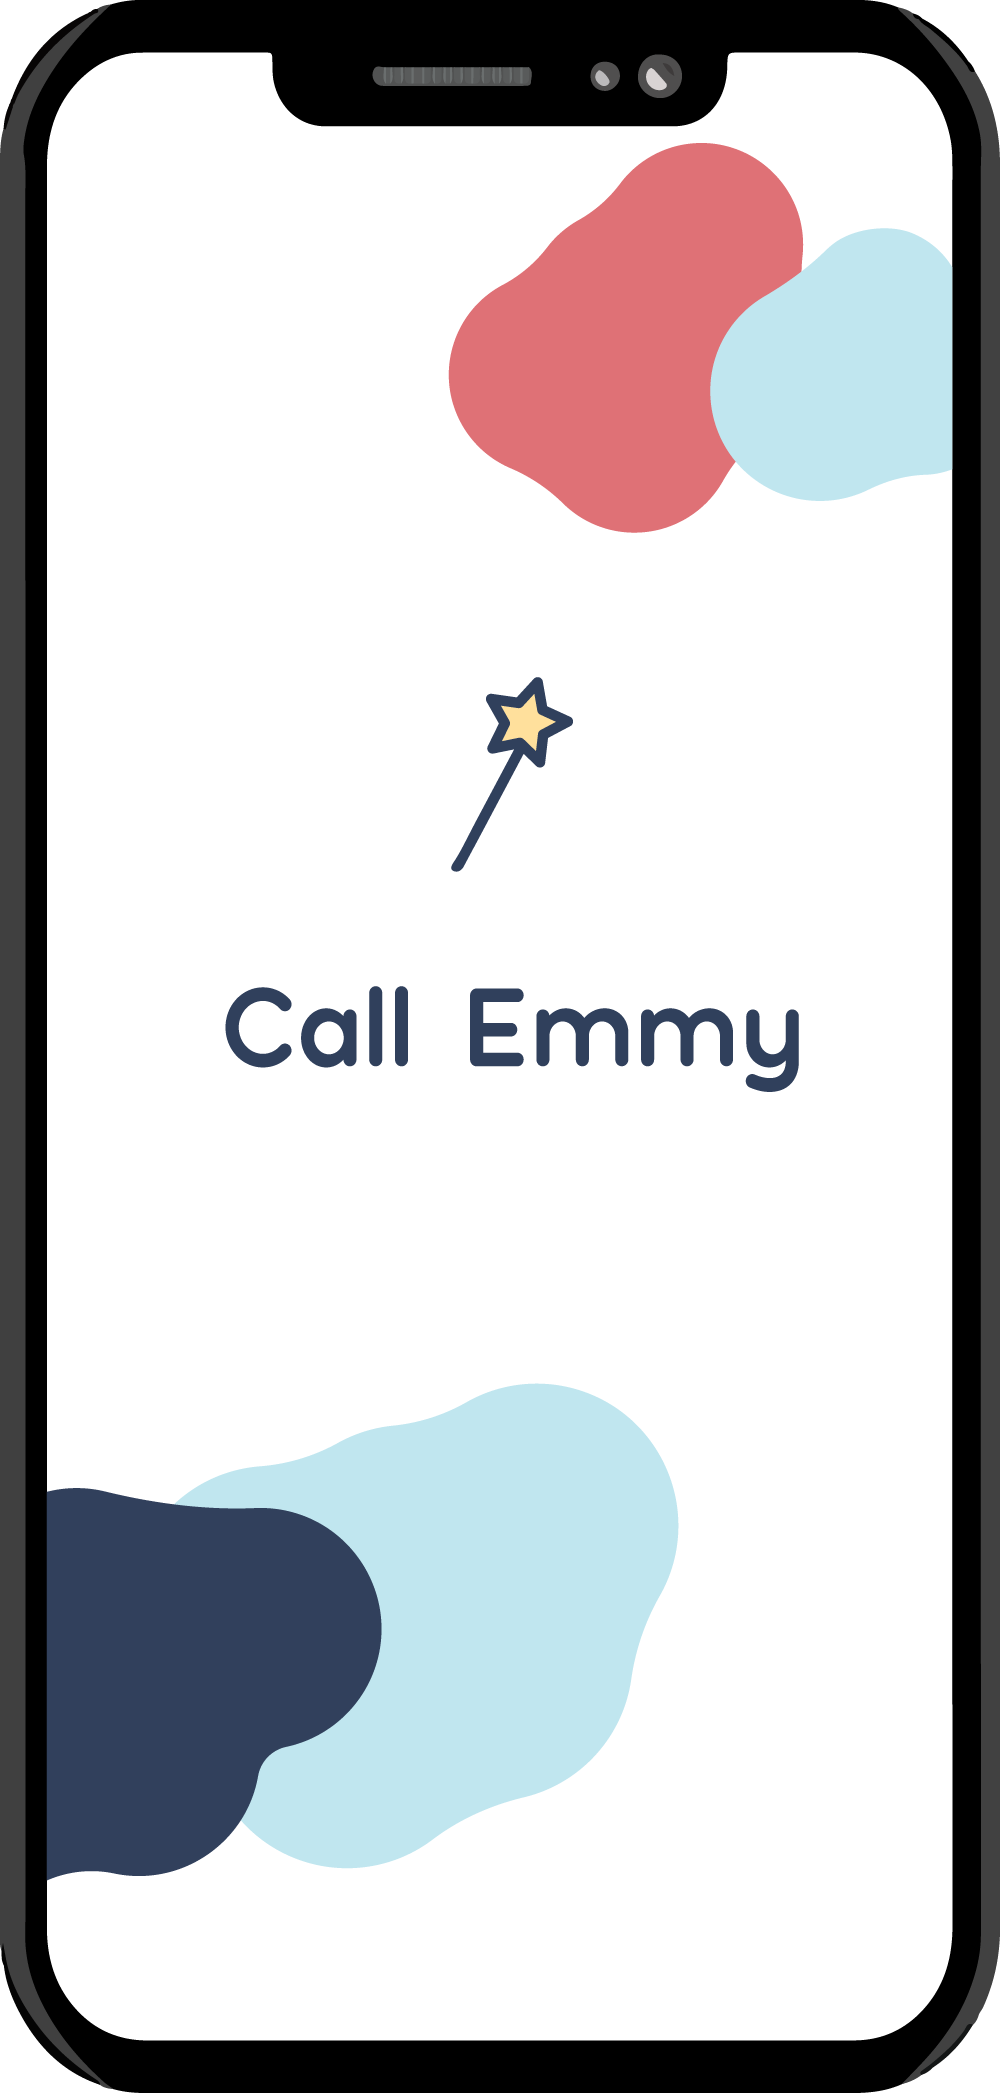 call-emmy-app-screenshot